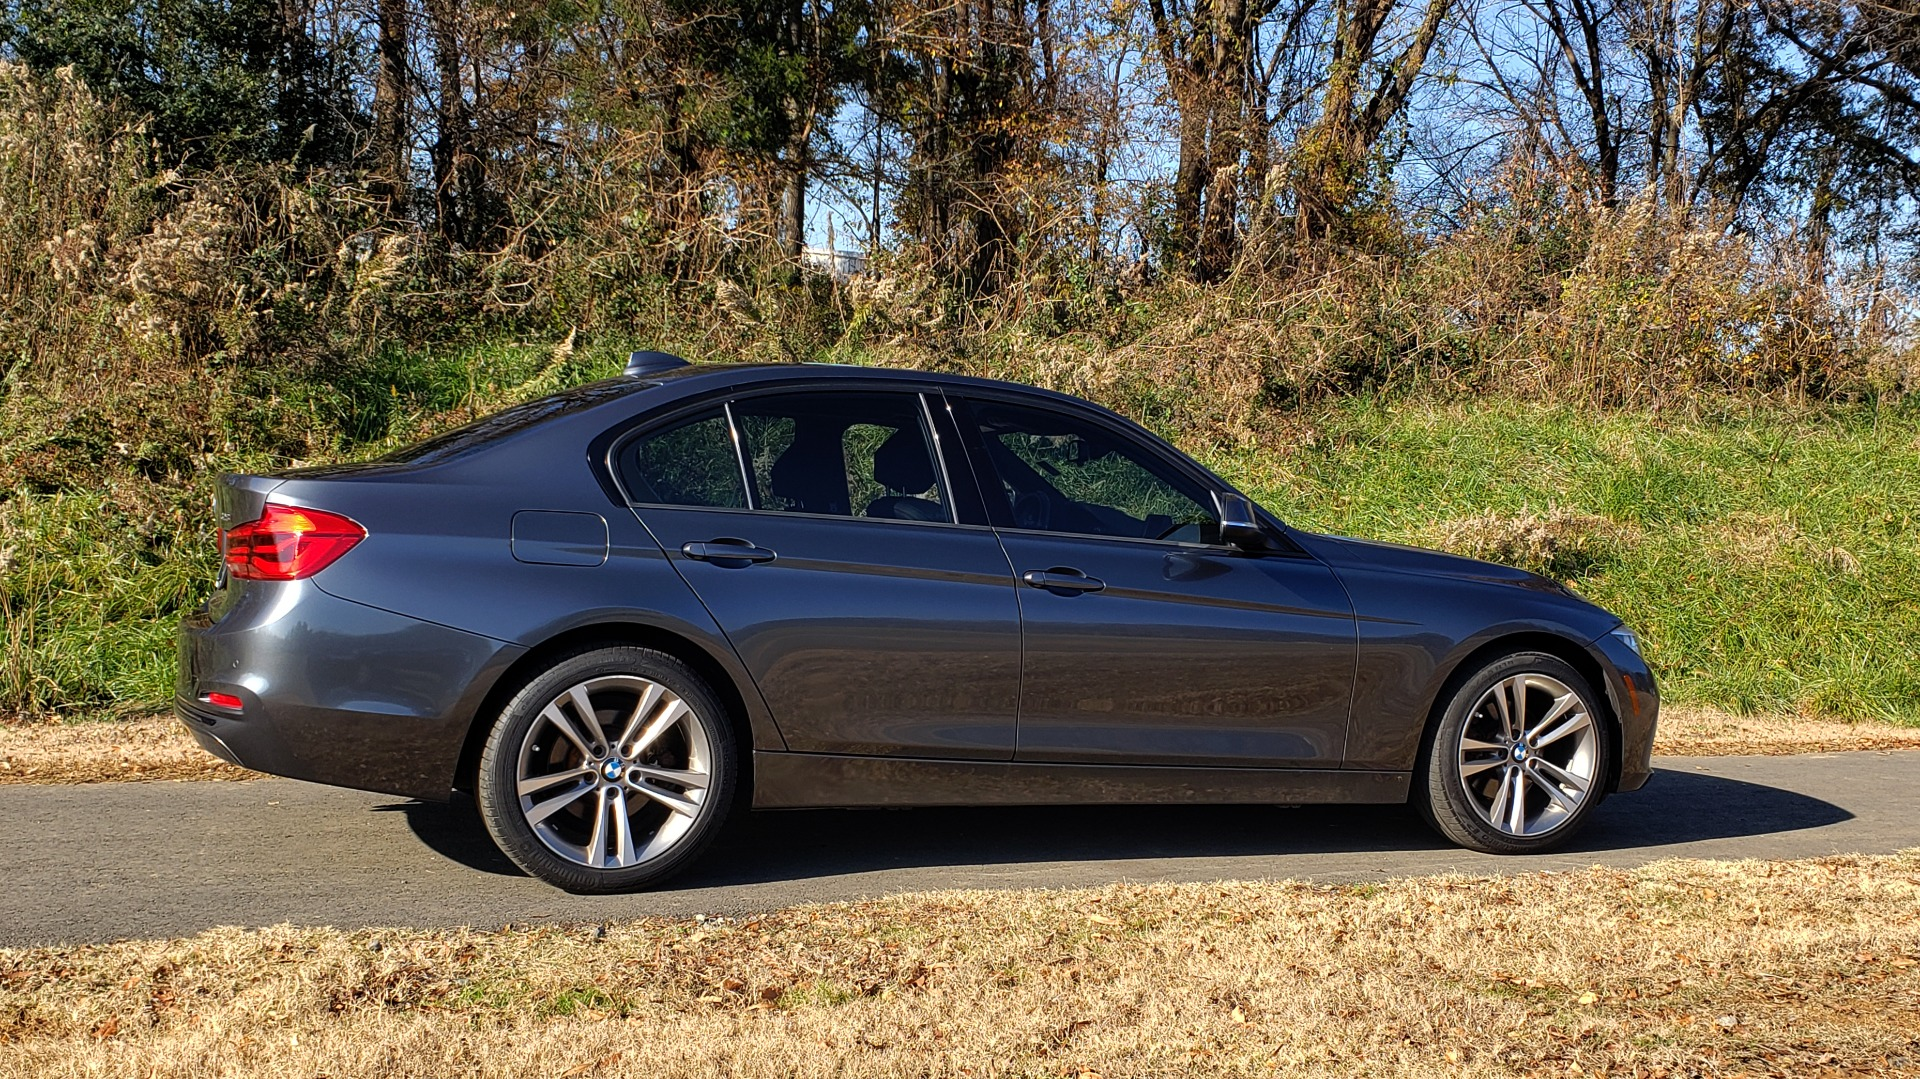 Used 2016 BMW 3 SERIES 328I / DRVR ASST / SUNROOF / PARK DIST CNTRL / REARVIEW for sale Sold at Formula Imports in Charlotte NC 28227 7